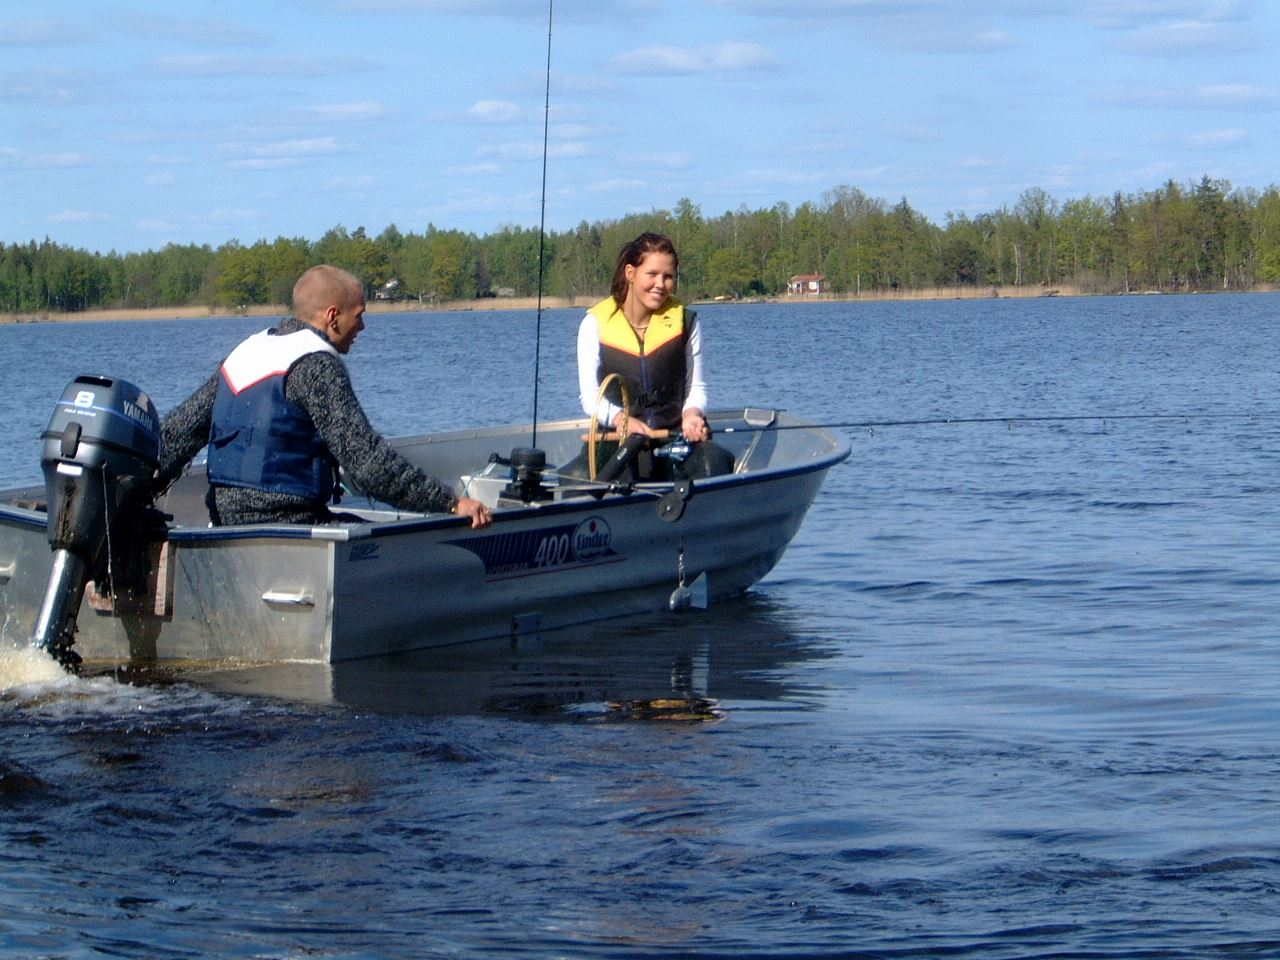 Torne Camping boat and canoe rental